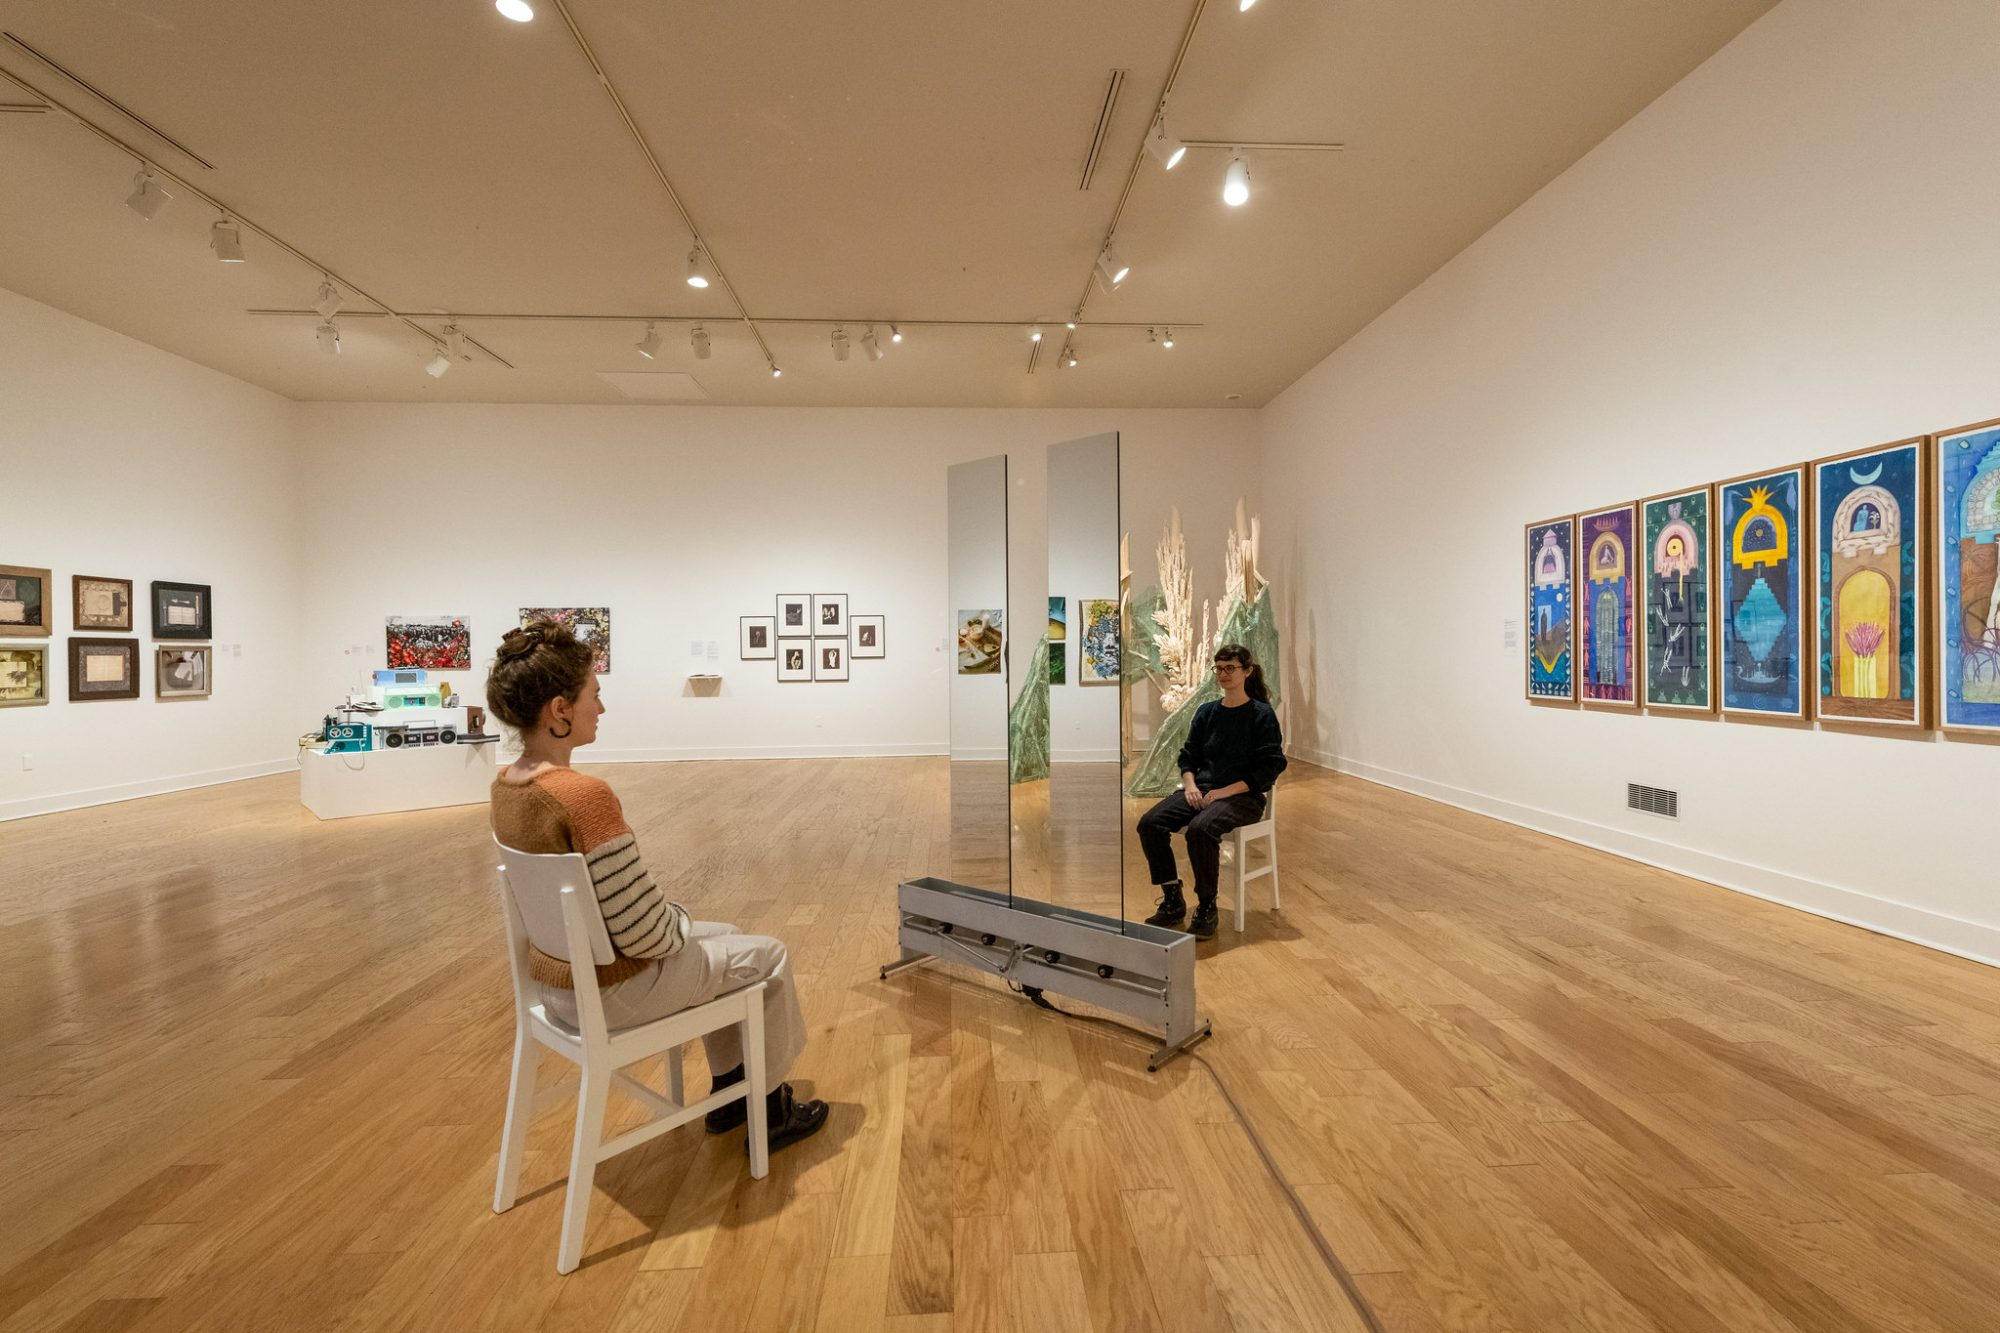 After Spiritualism: Loss and Transcendence in Contemporary Art